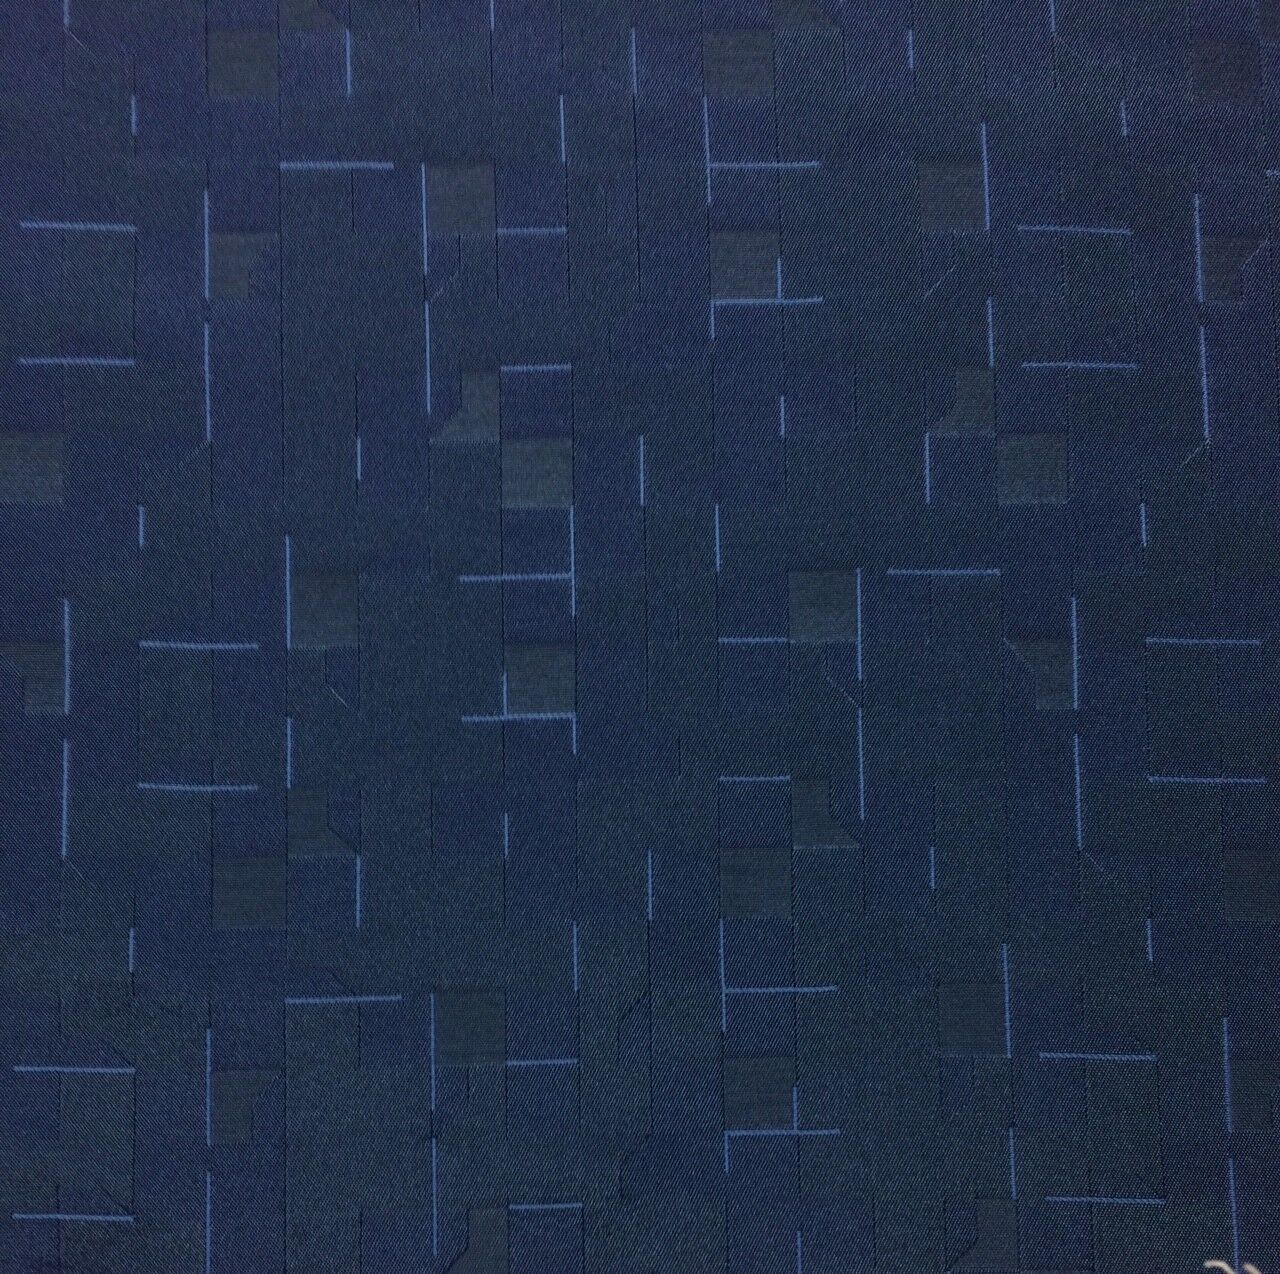 MODERN GEOMETRIC NAVY BLUE ABSTRACT FURNITURE UPHOLSTERY FAB